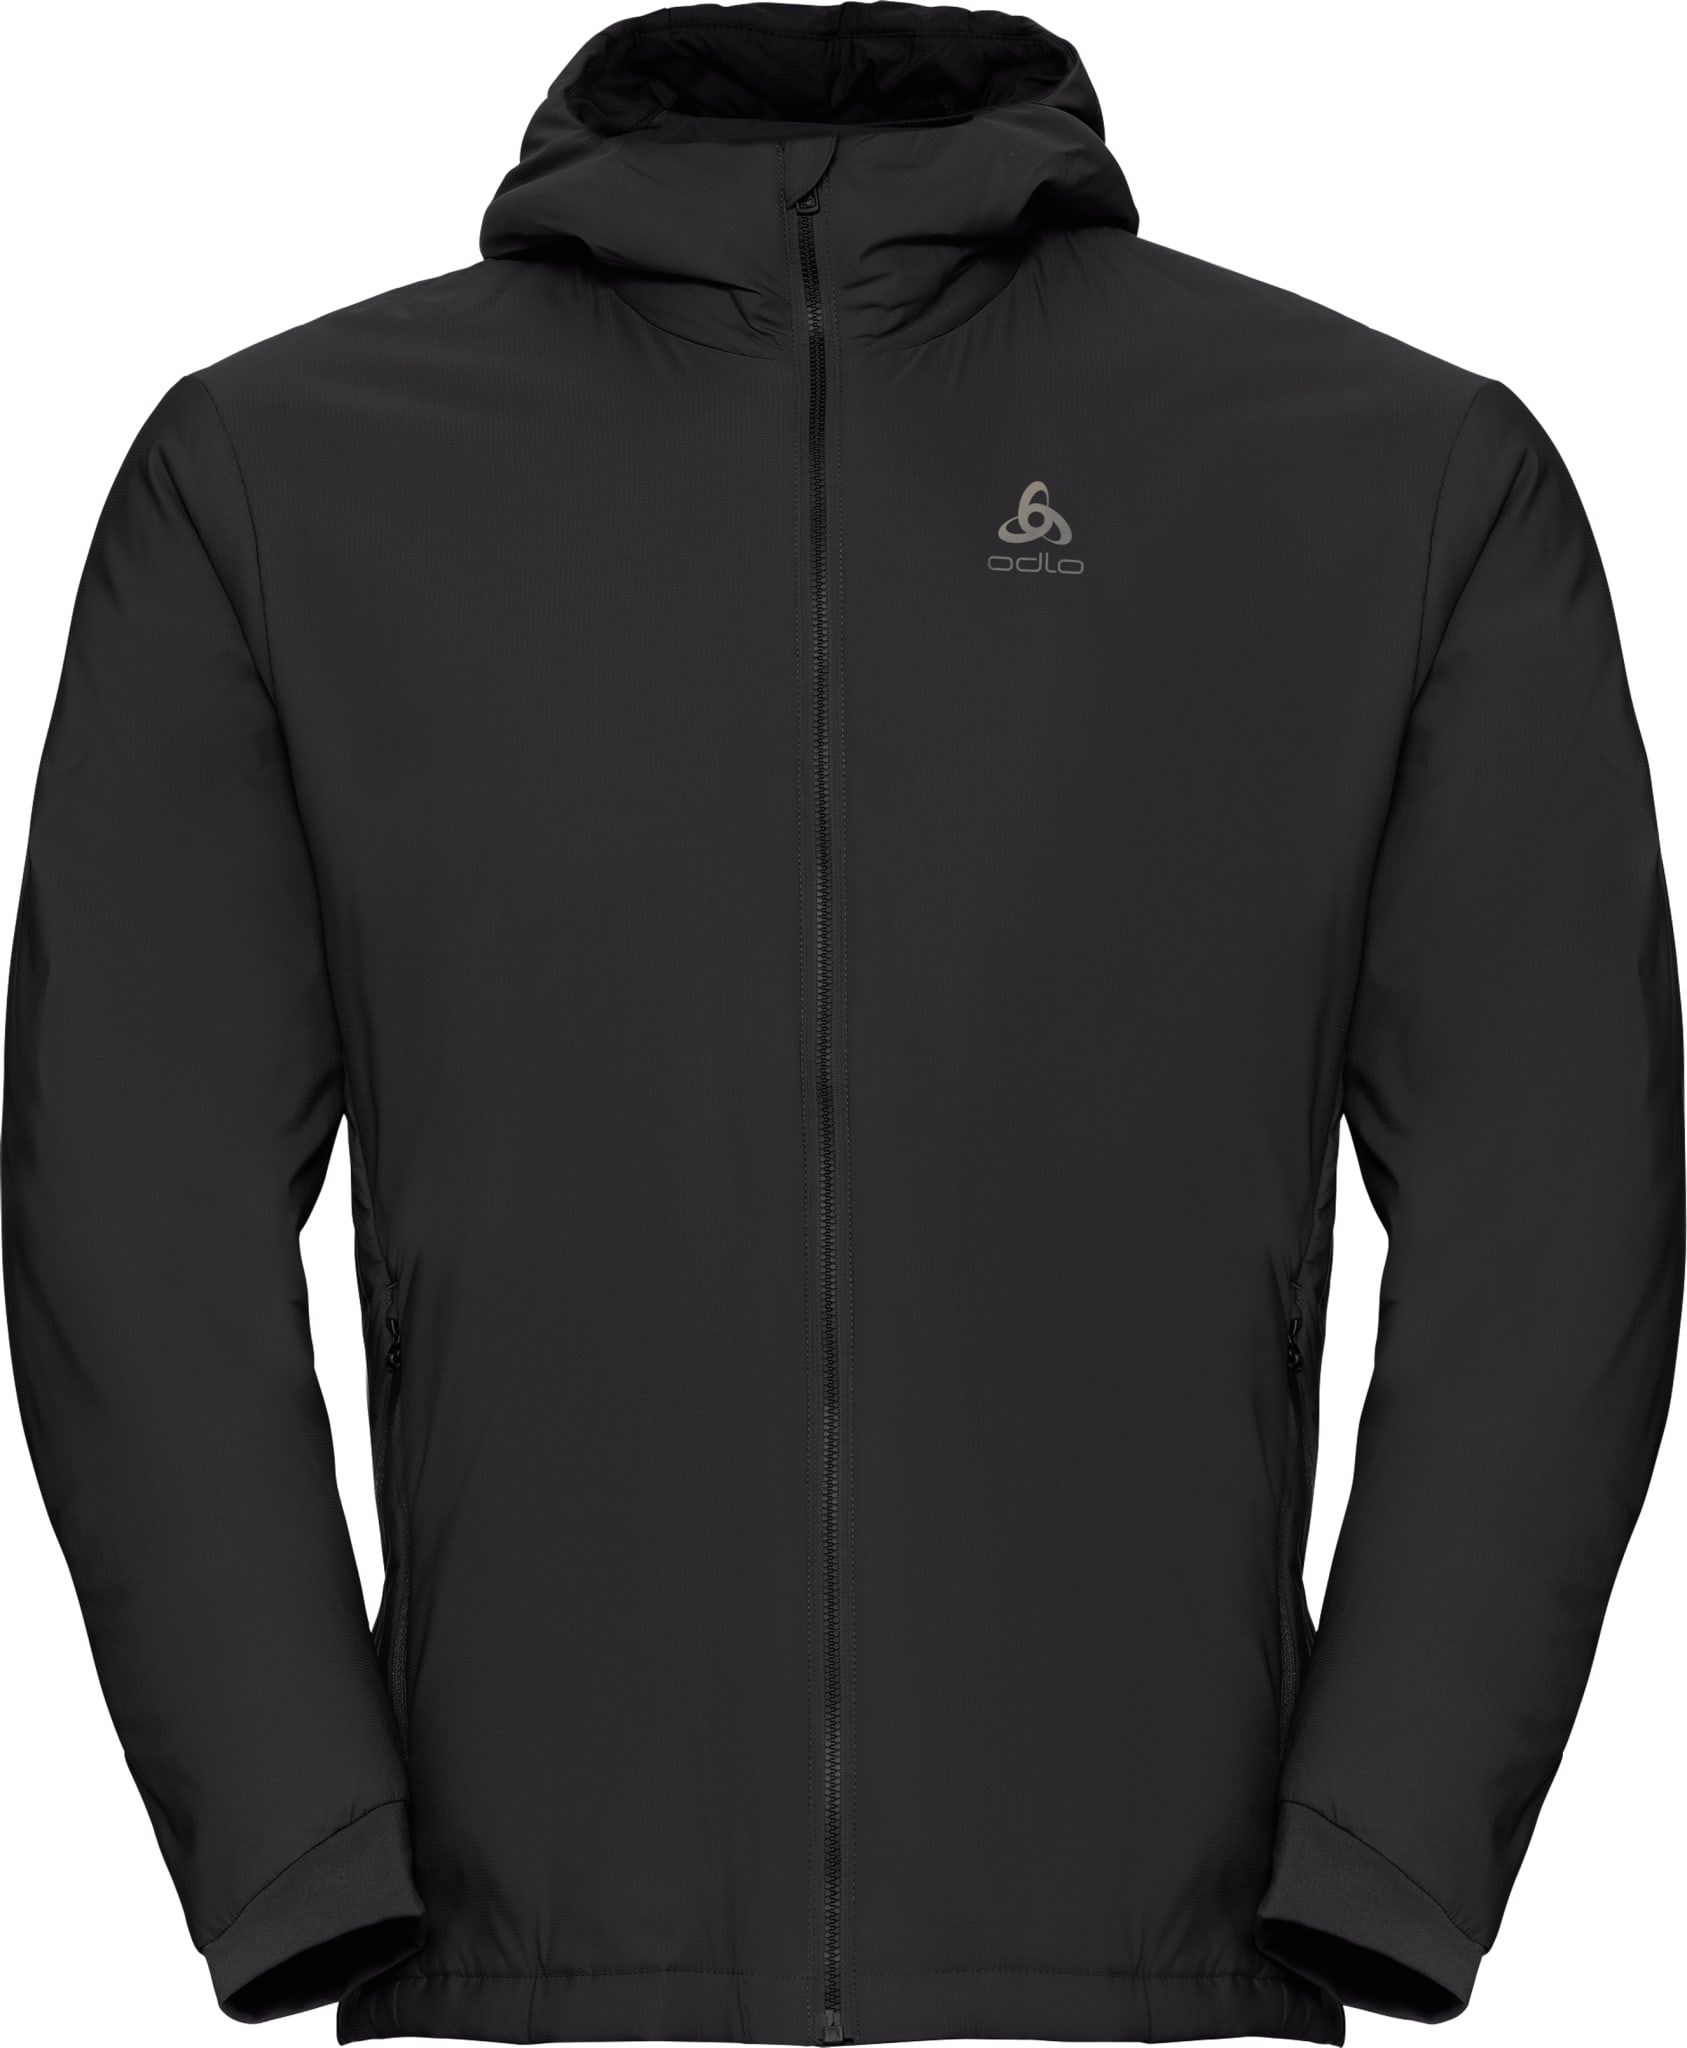 Insulated FLI S-Thermic Jacket M